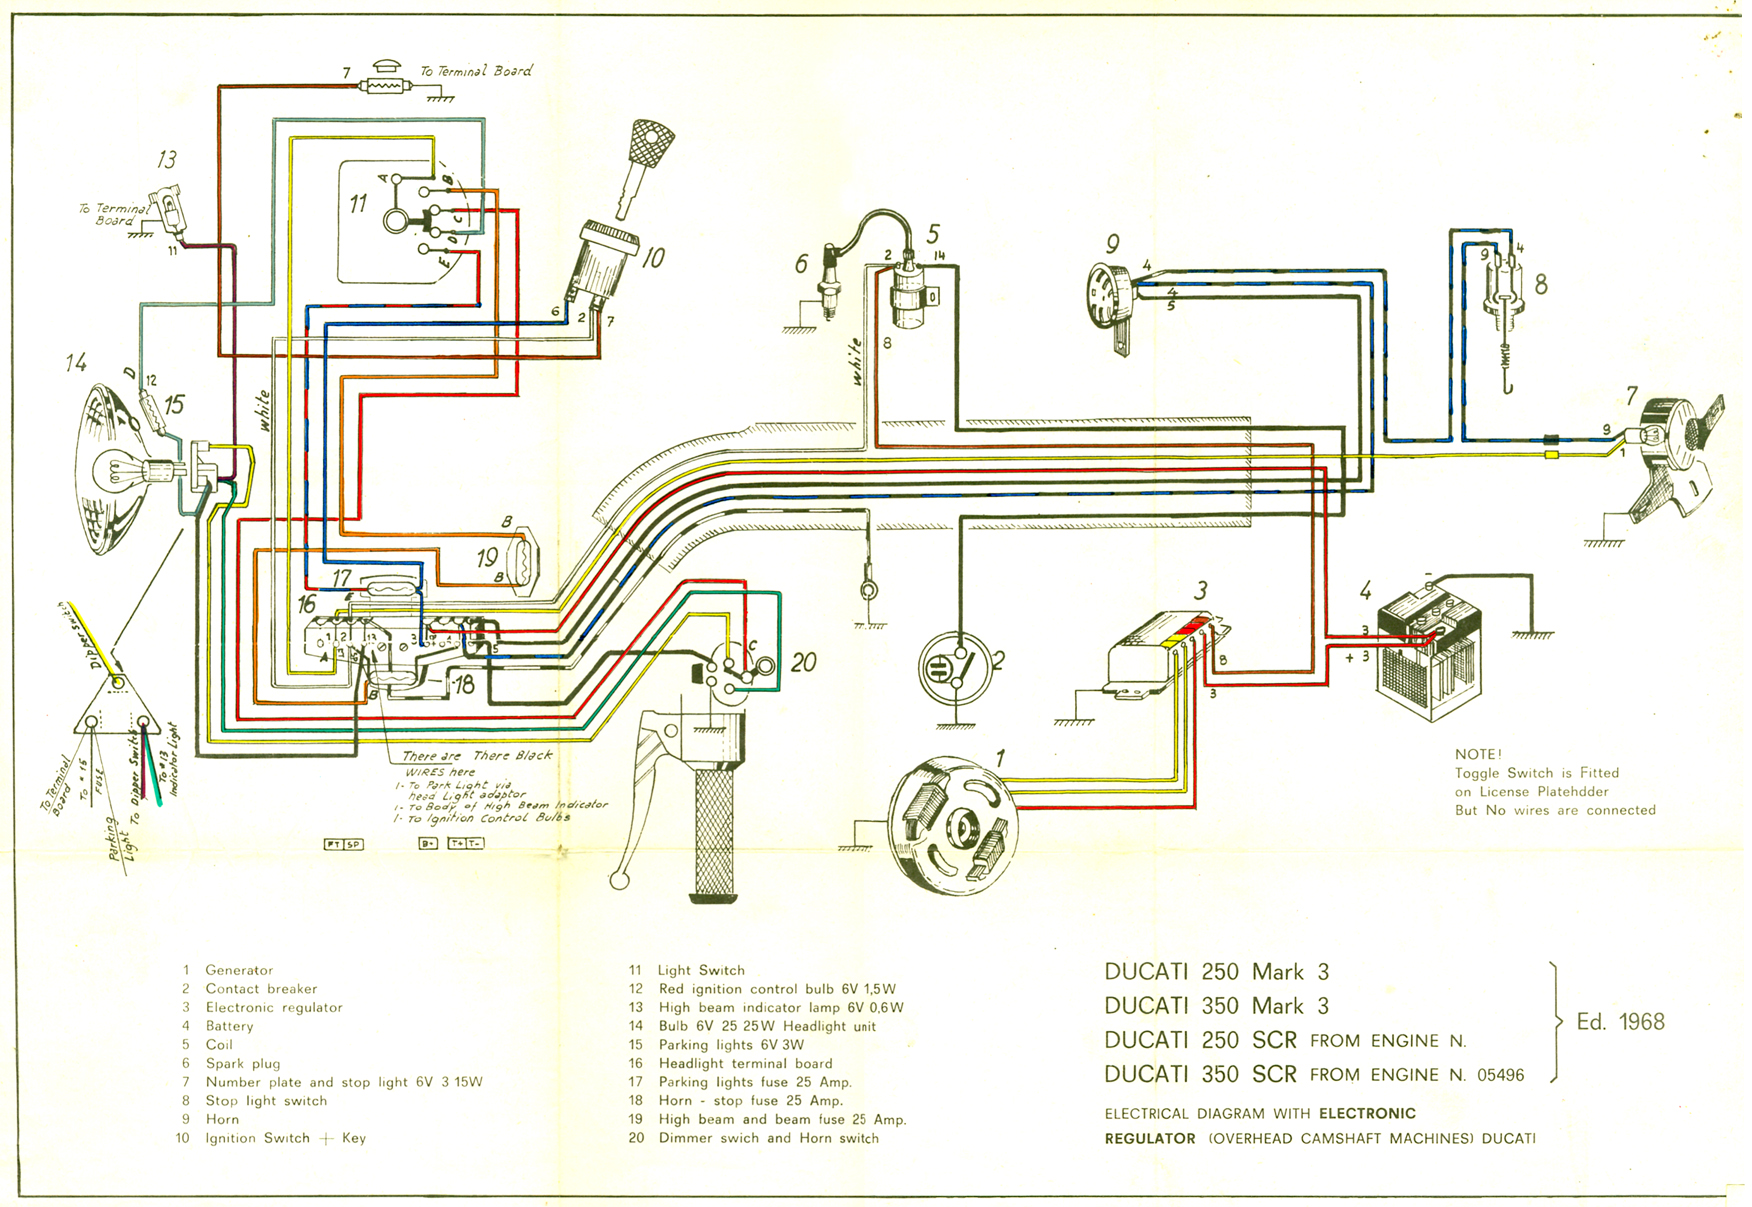 hight resolution of ducati 996 wiring diagram triumph bonneville wiring diagram wiring diagram odicis ducati 900ss wiring diagram